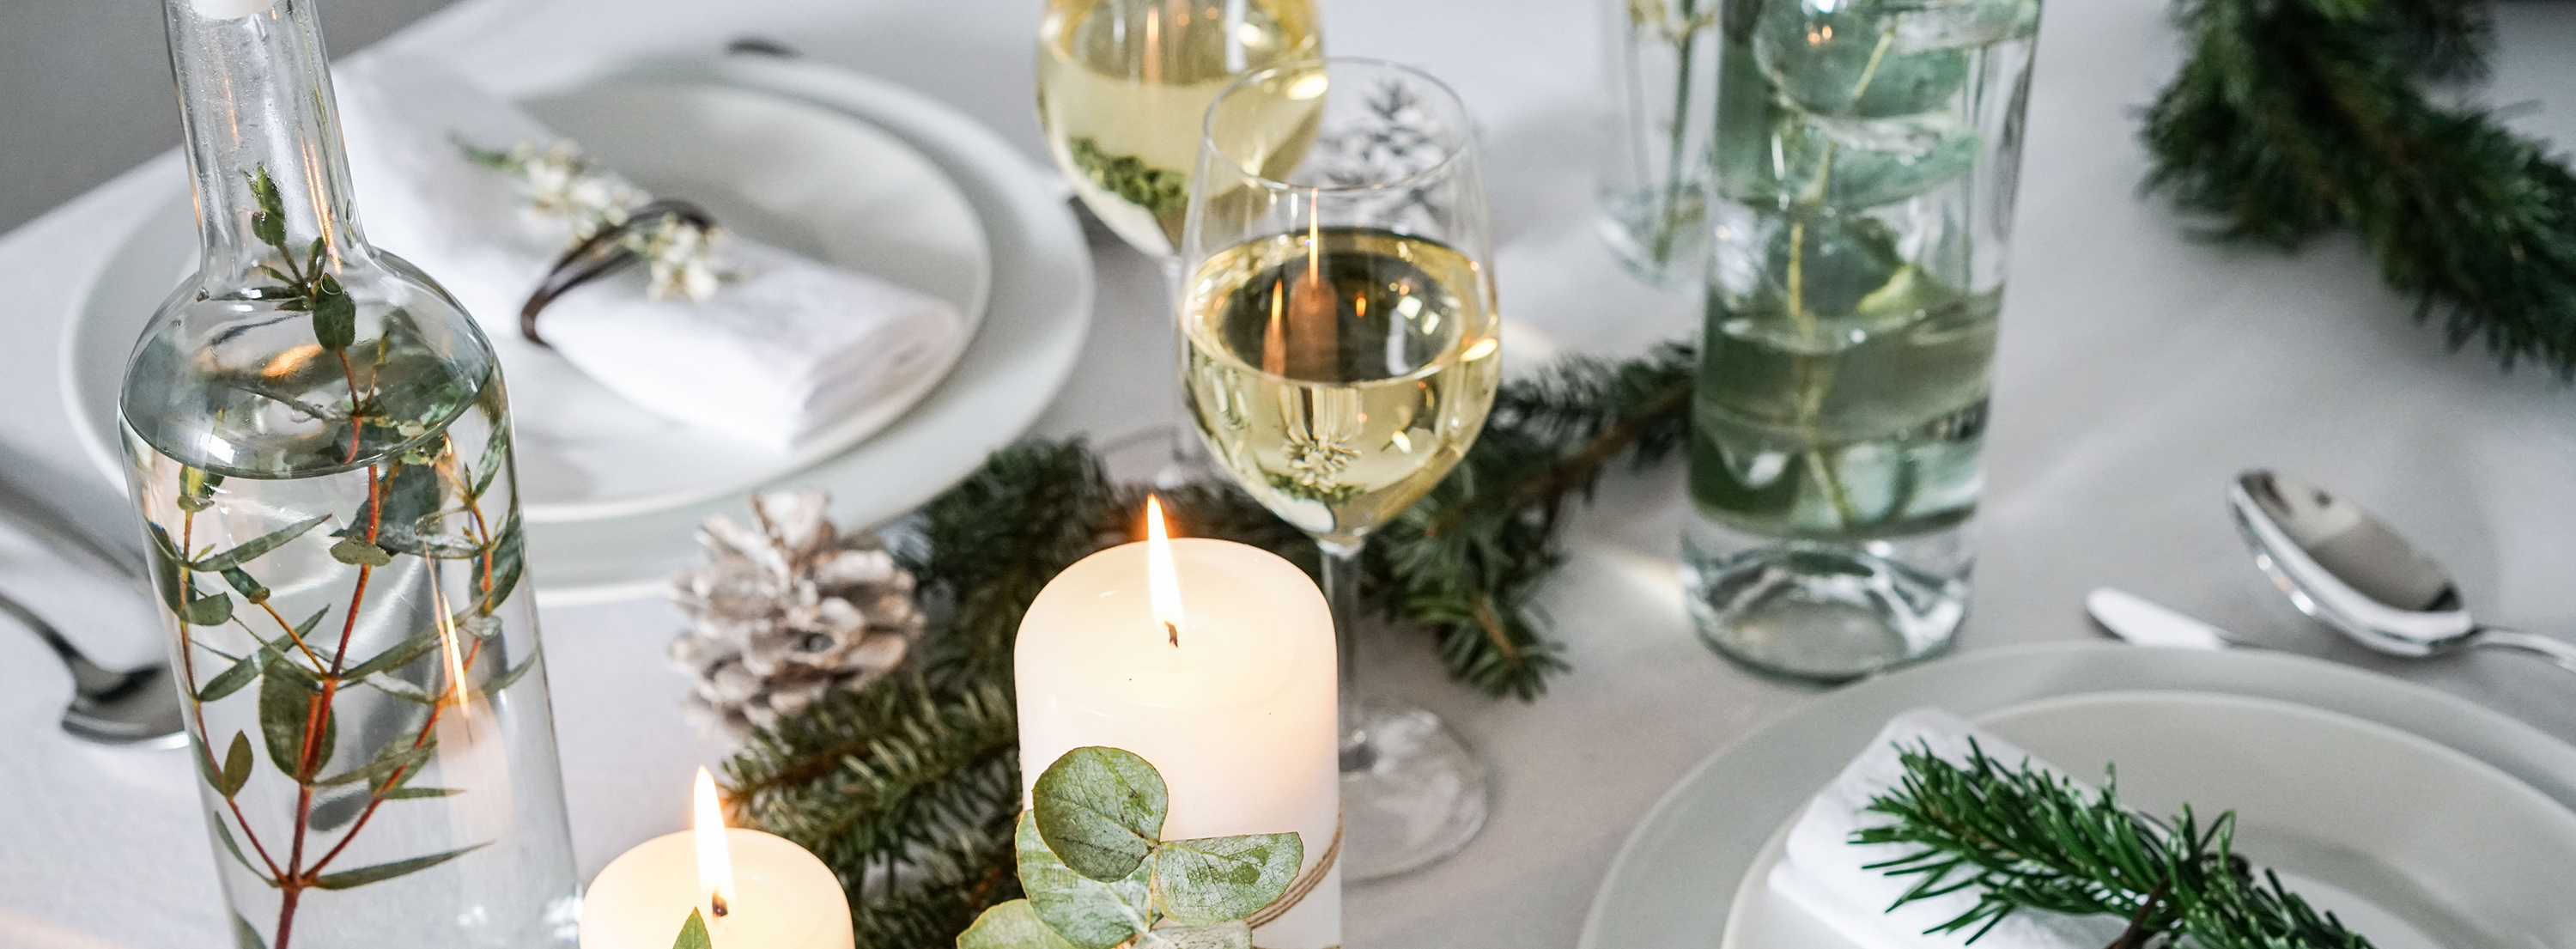 Nature inspired DIY Christmas table decorations